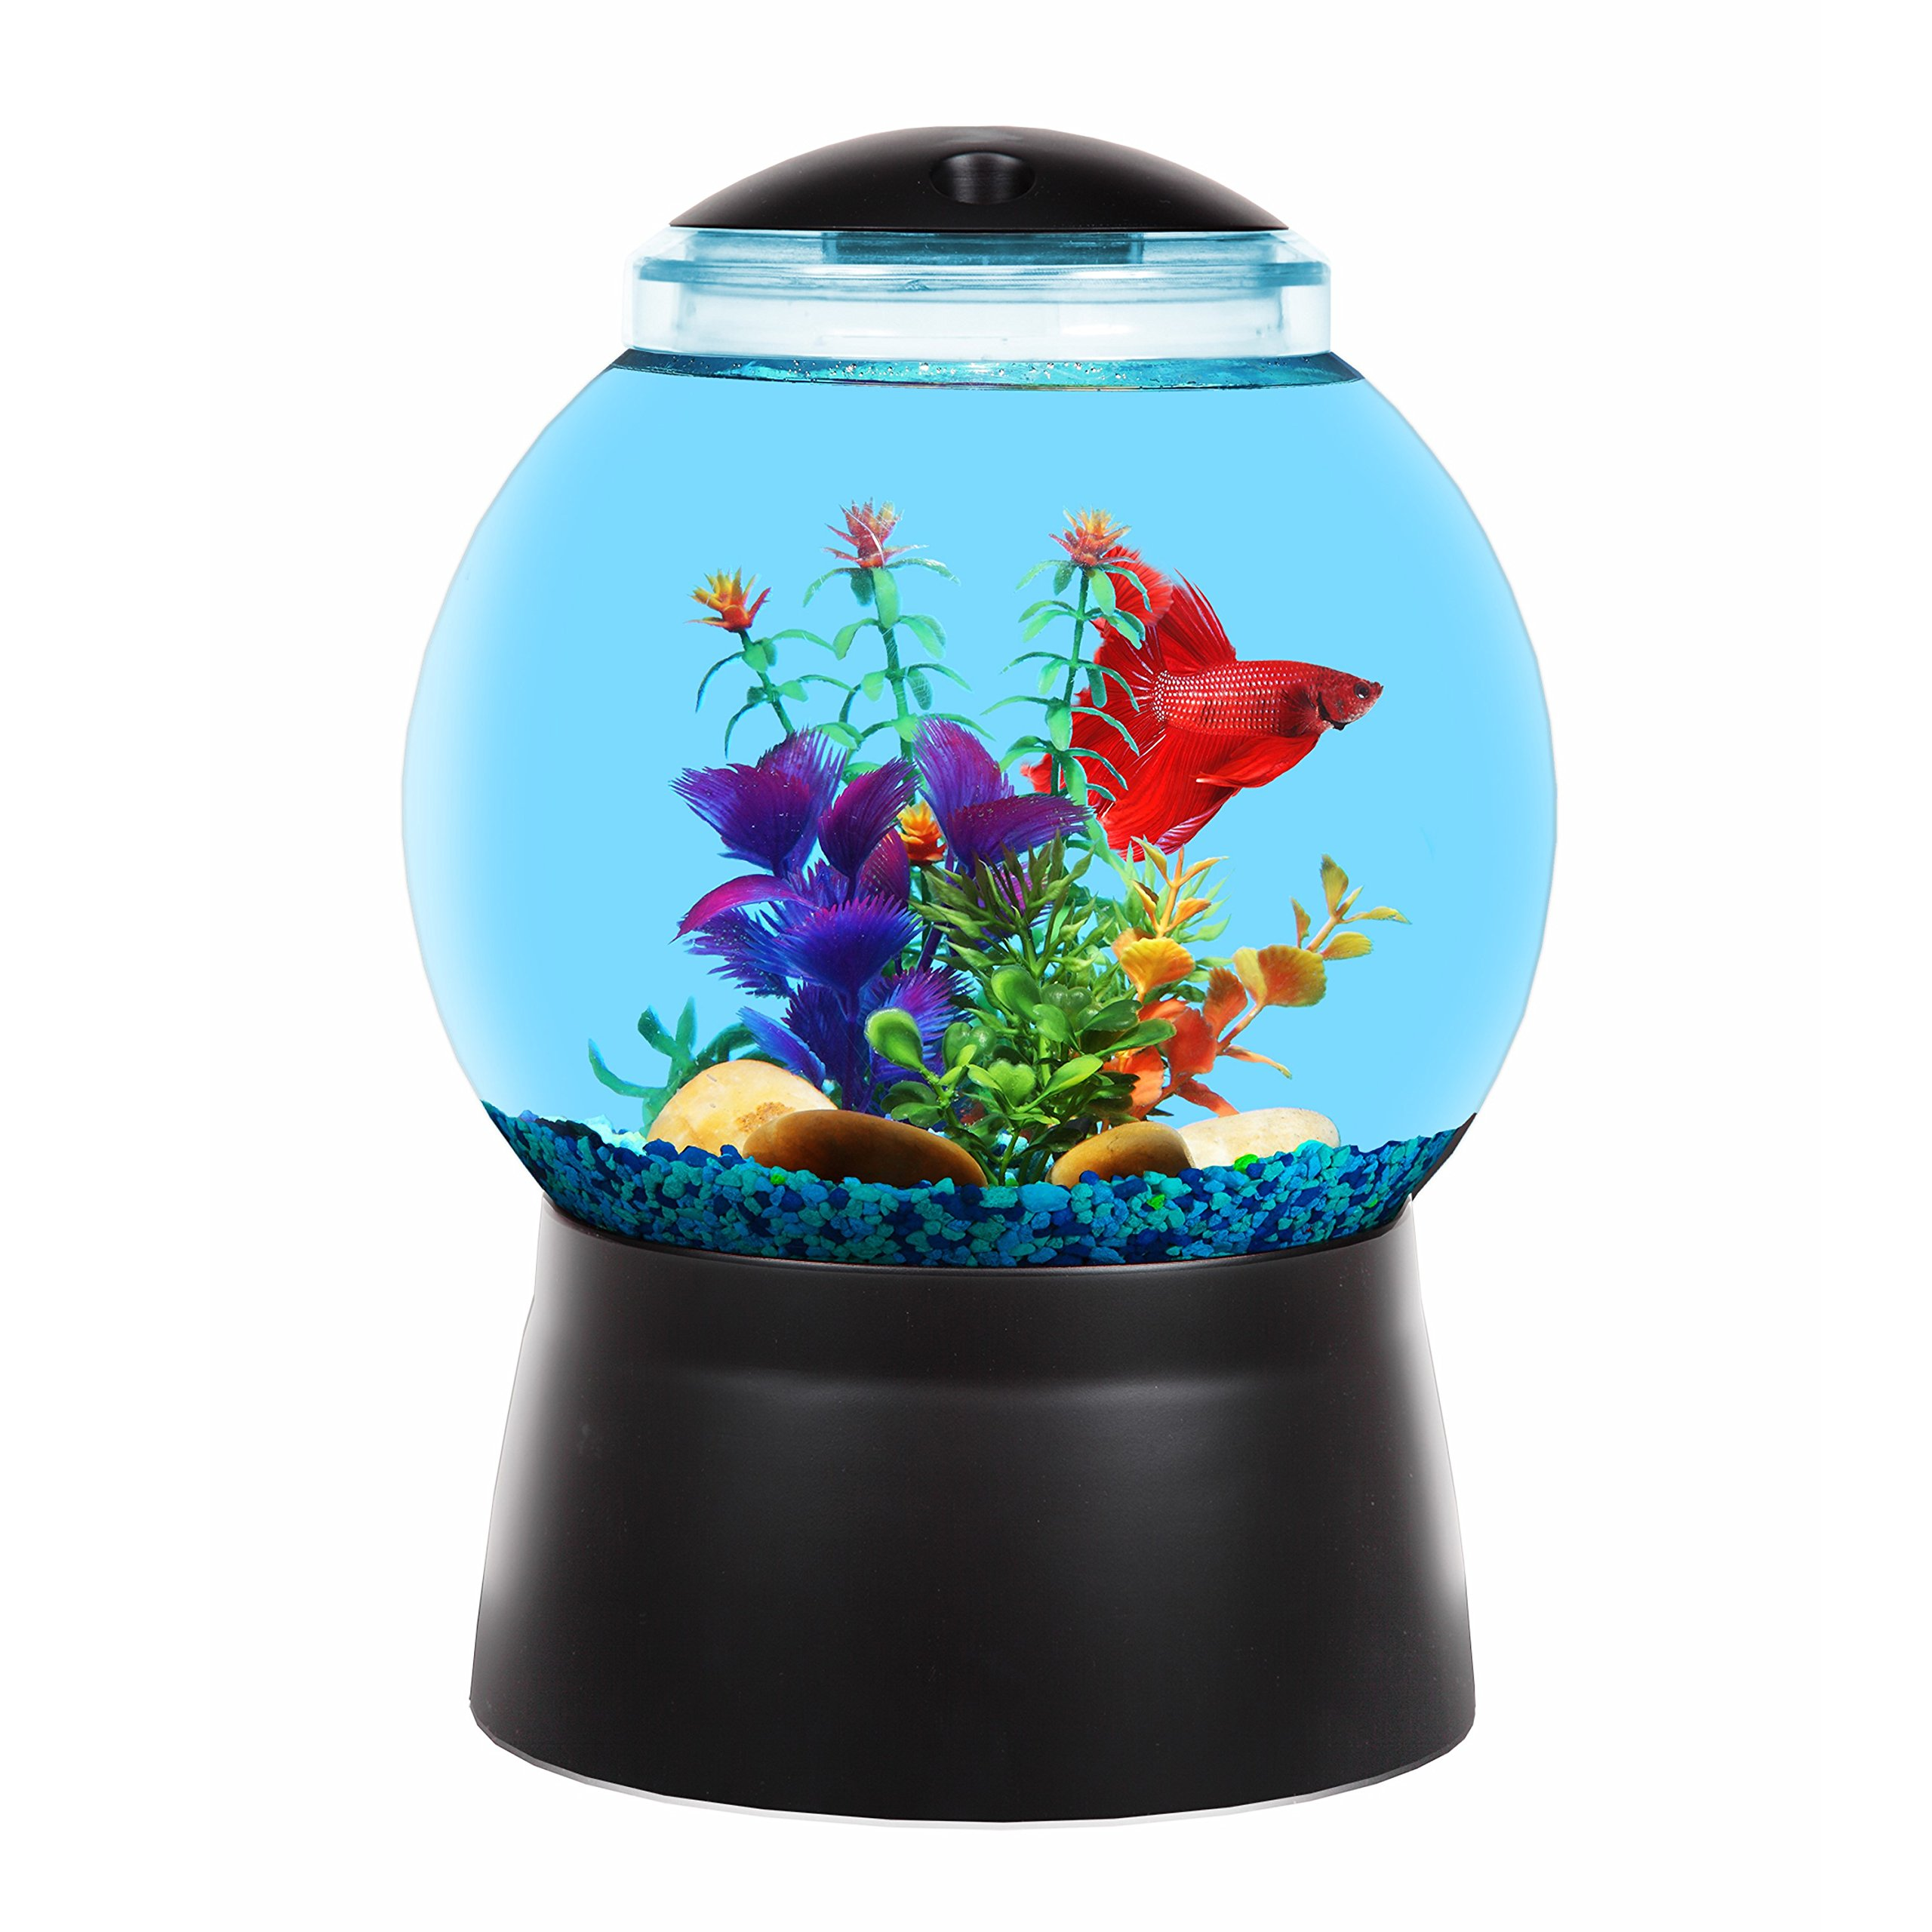 BettaTank 2-Gallon Gumball Fish Tank with LED Lighting by Koller Products